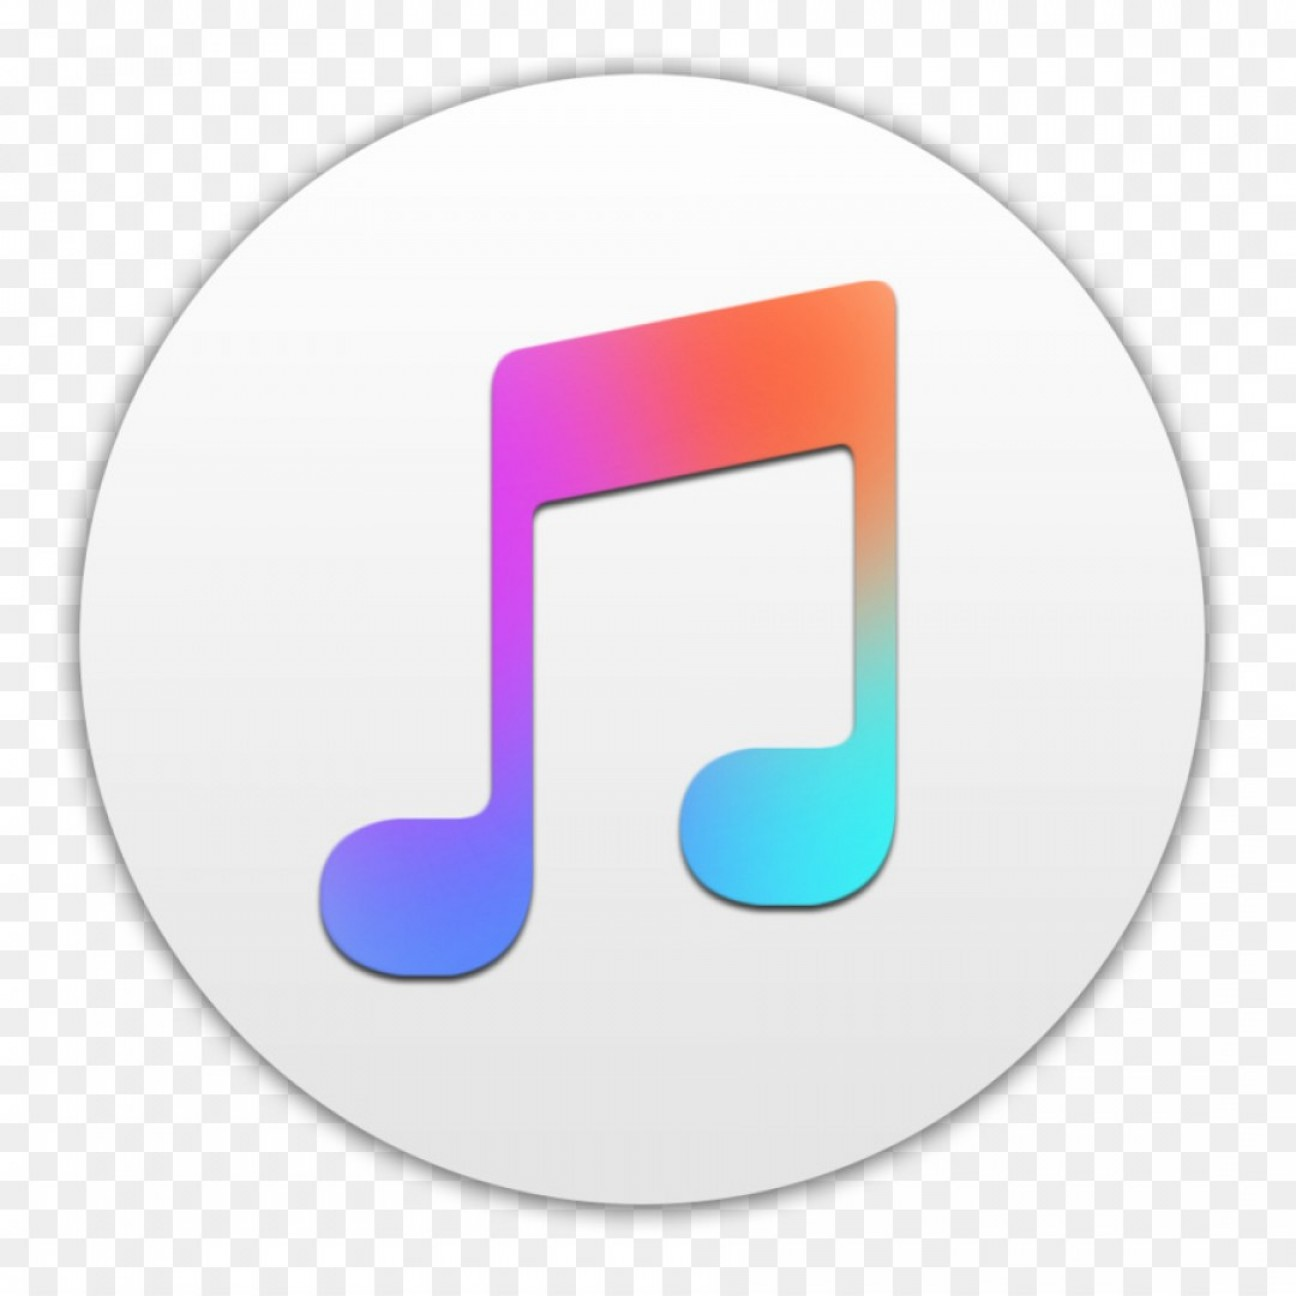 Png Apple Music App Store Itunes Ios Share.